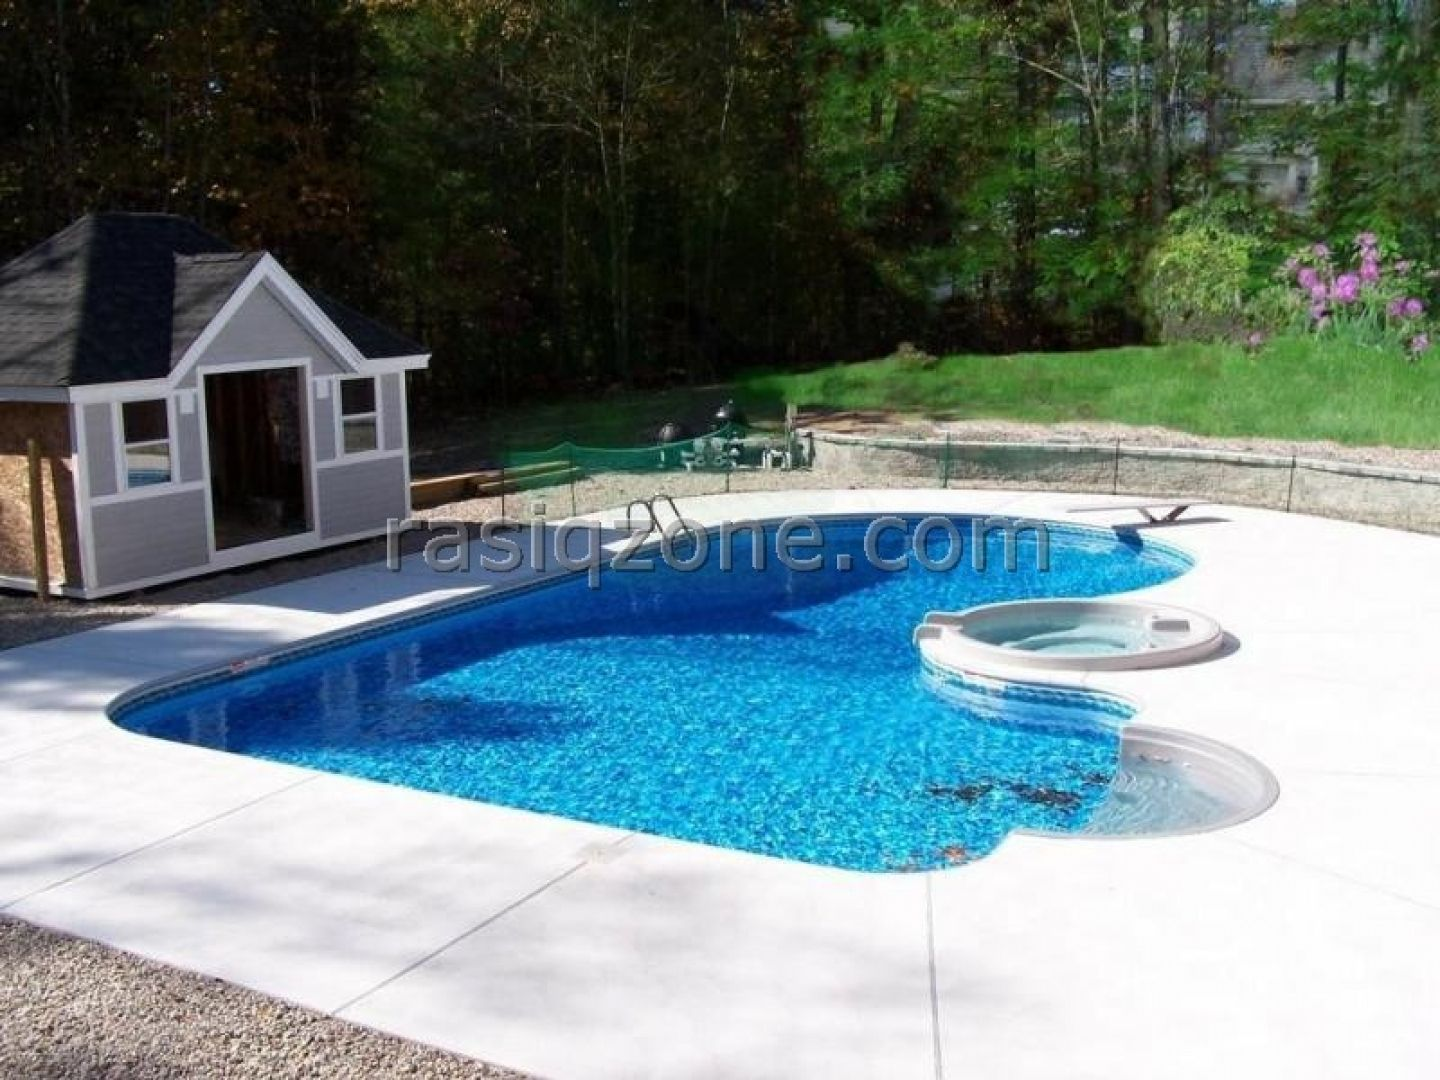 Inground pools kids will love pool designs backyard for Back garden swimming pool